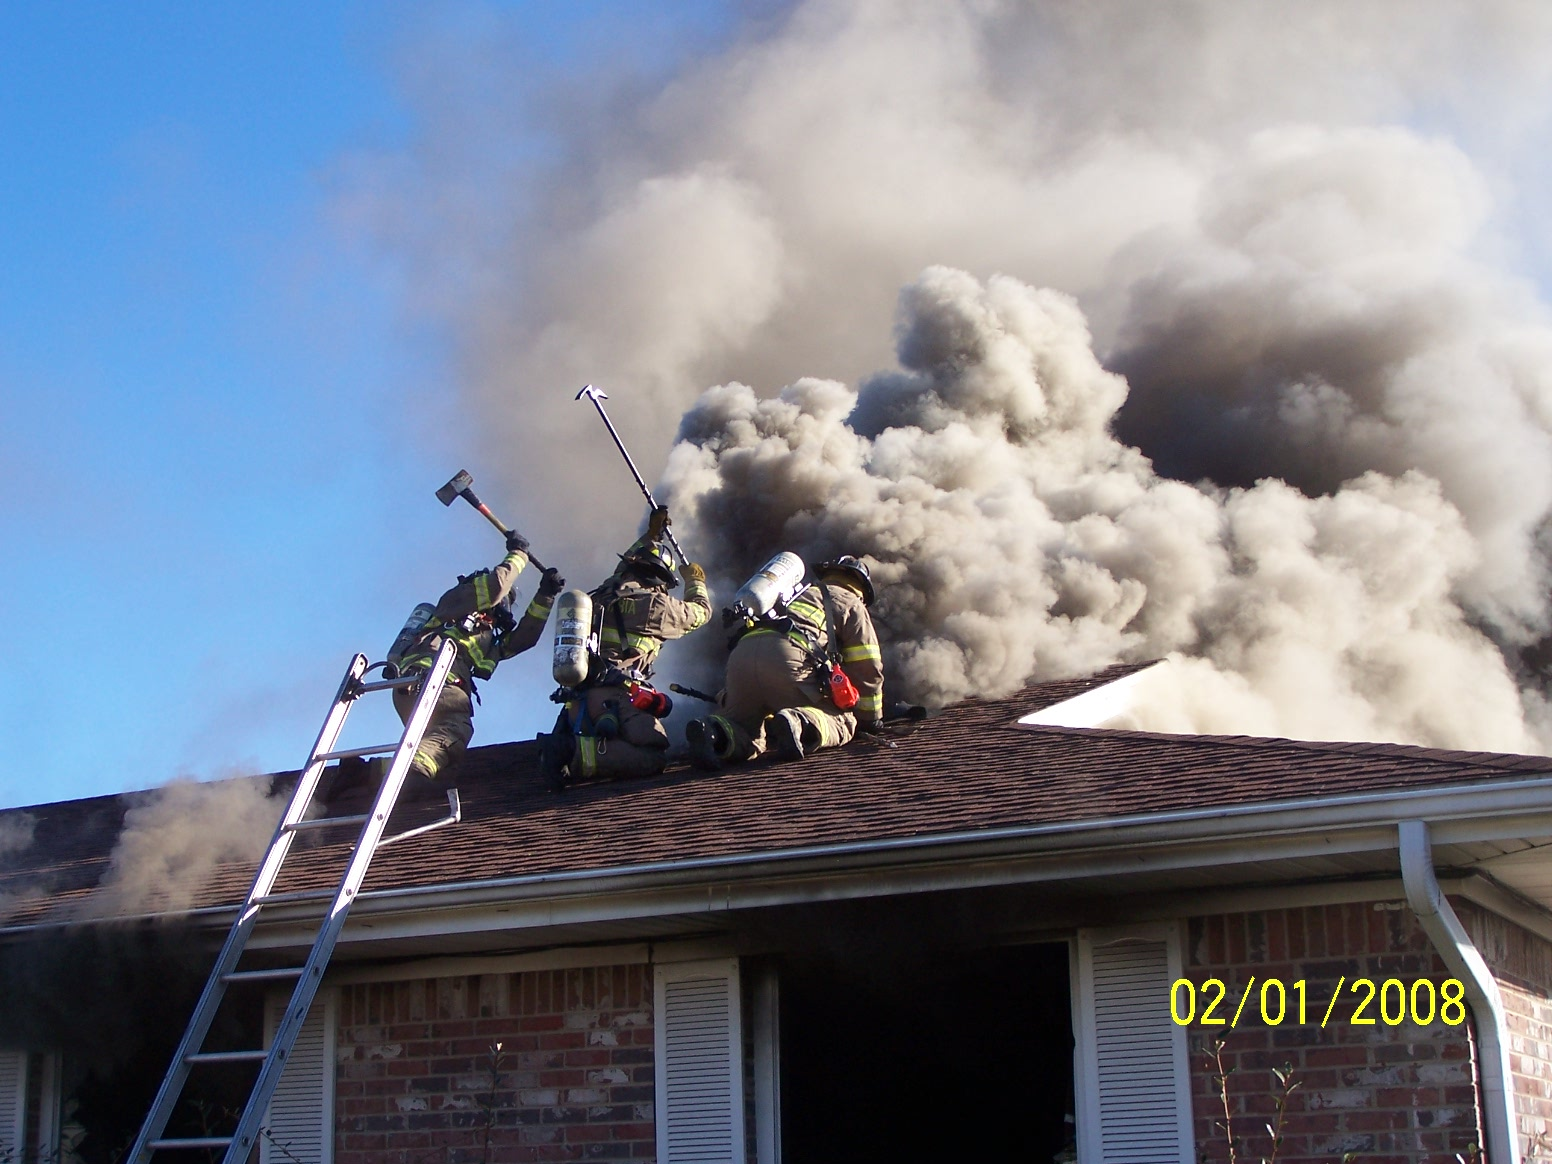 Roof Operations And Operating Off Ladders